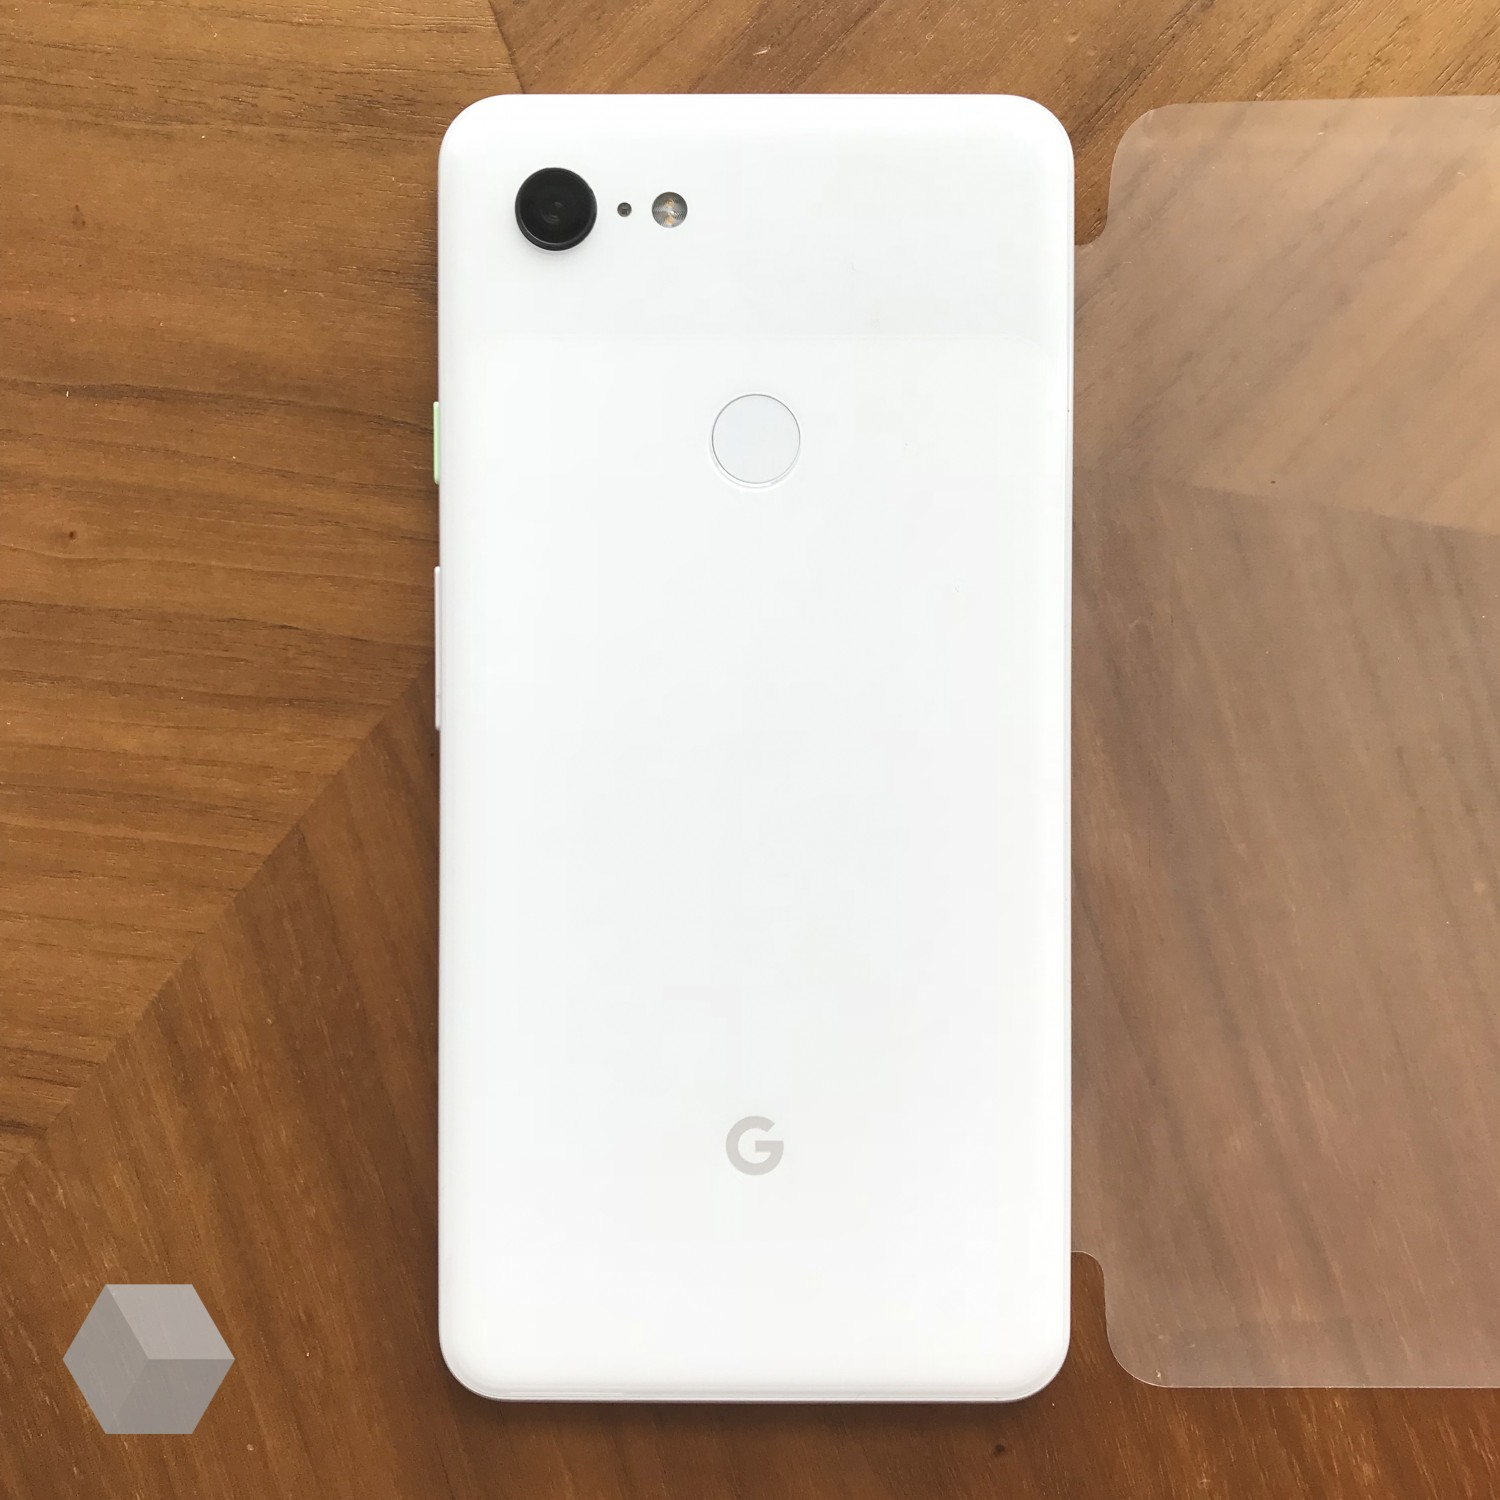 - GBQH2IDDCwIZ - 7 things you should know about Google Pixel 3, Pixel 3 XL